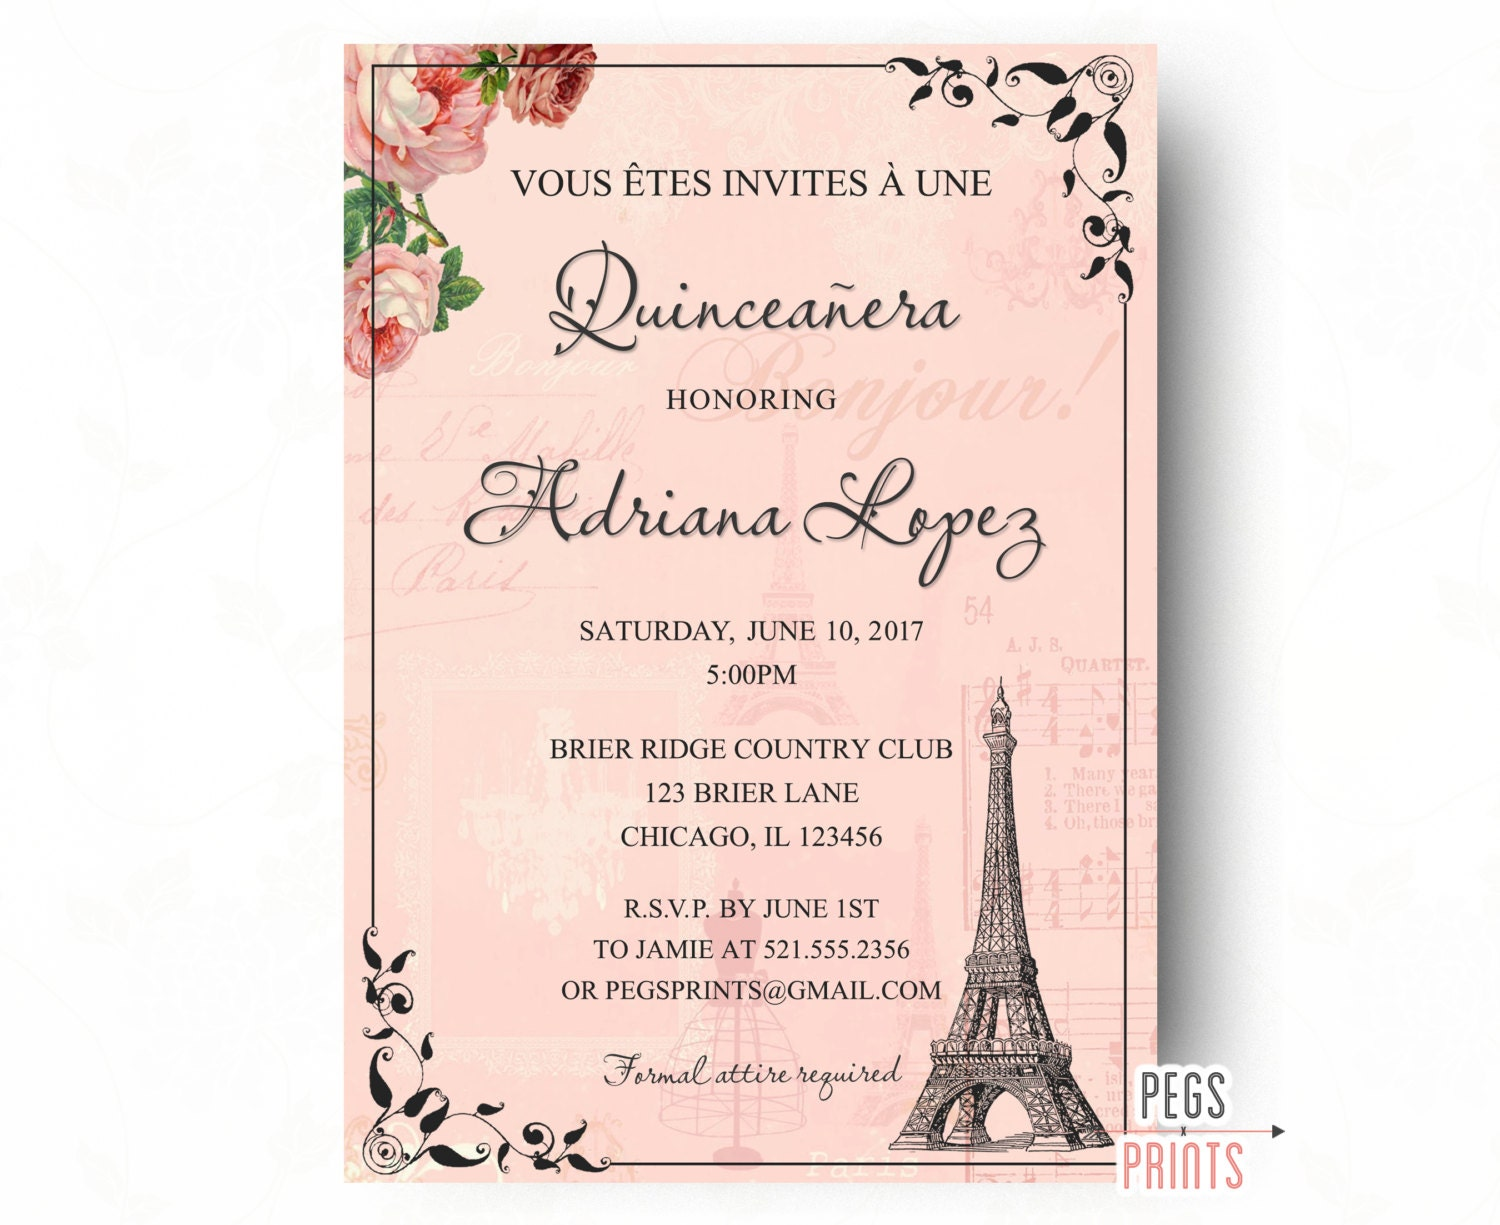 Paris quinceanera invitation quinceanera invitation zoom solutioingenieria Image collections